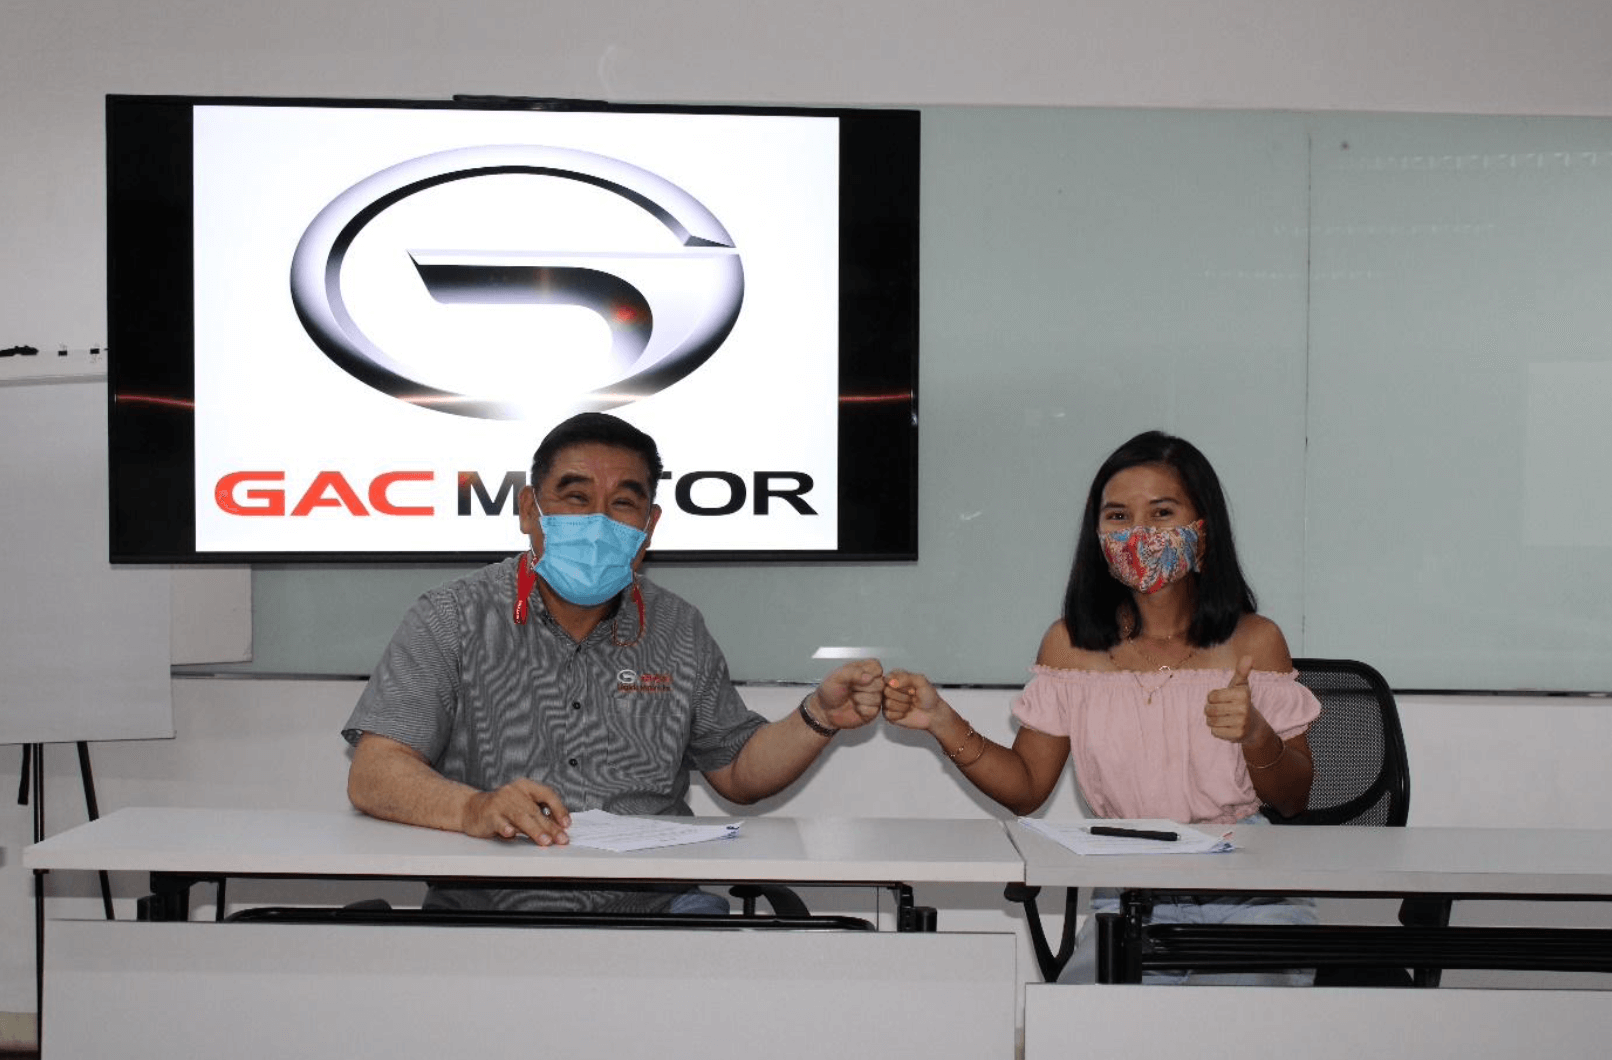 Legado Motors Inc. President and CEO Wilbert Lim and Ariana Dormitorio together signed the partnership contract at GAC Motor Metrowalk Showroom.